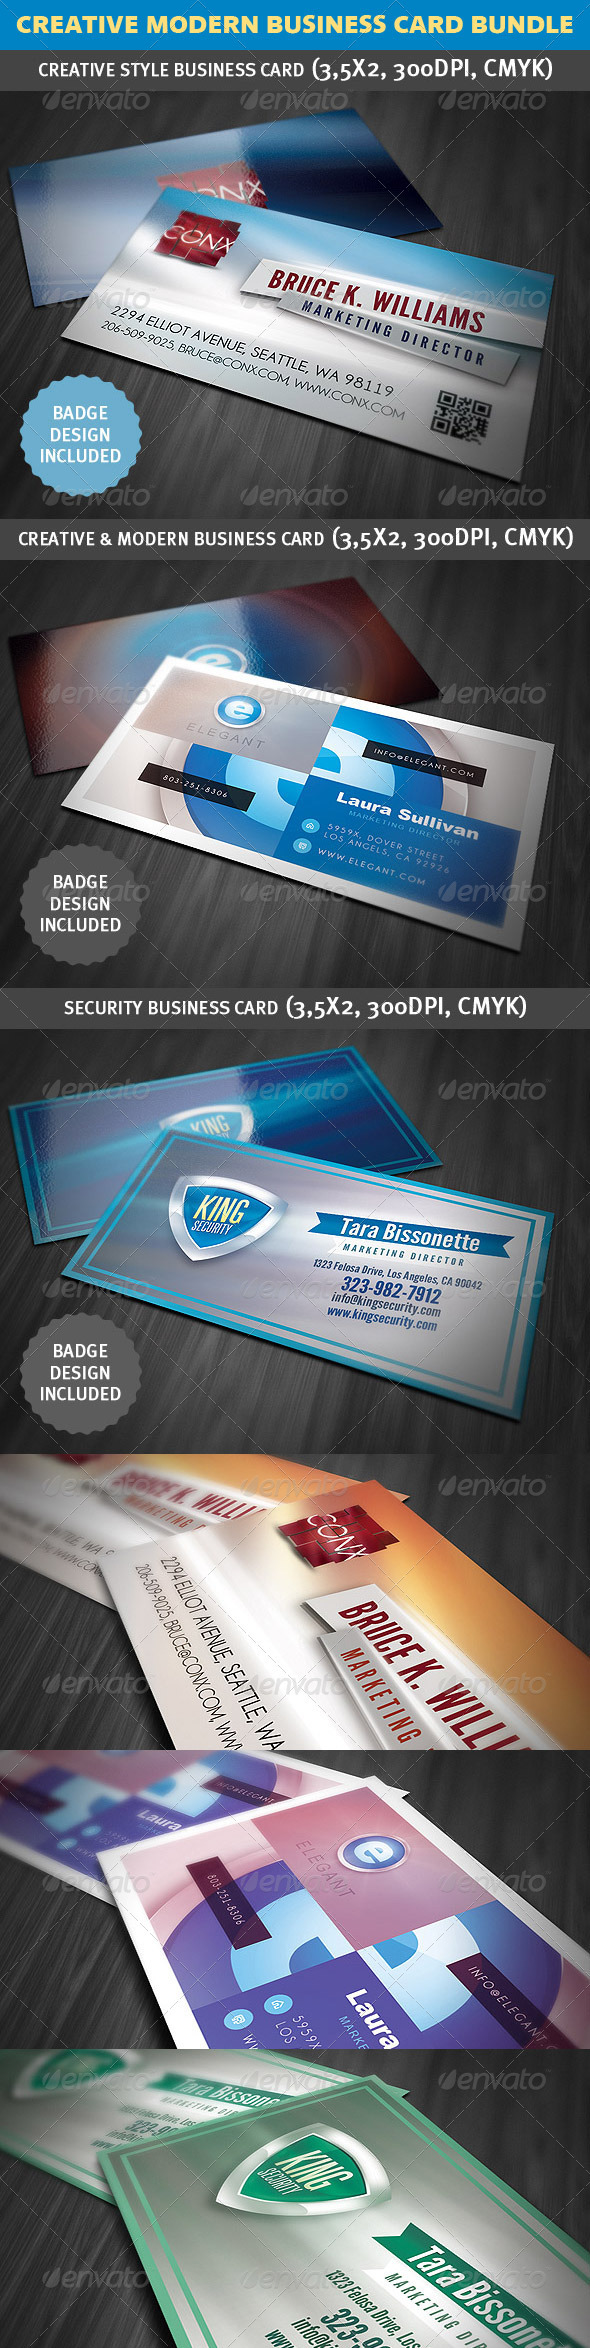 GraphicRiver Creative Modern Business Card Bundle 3587670